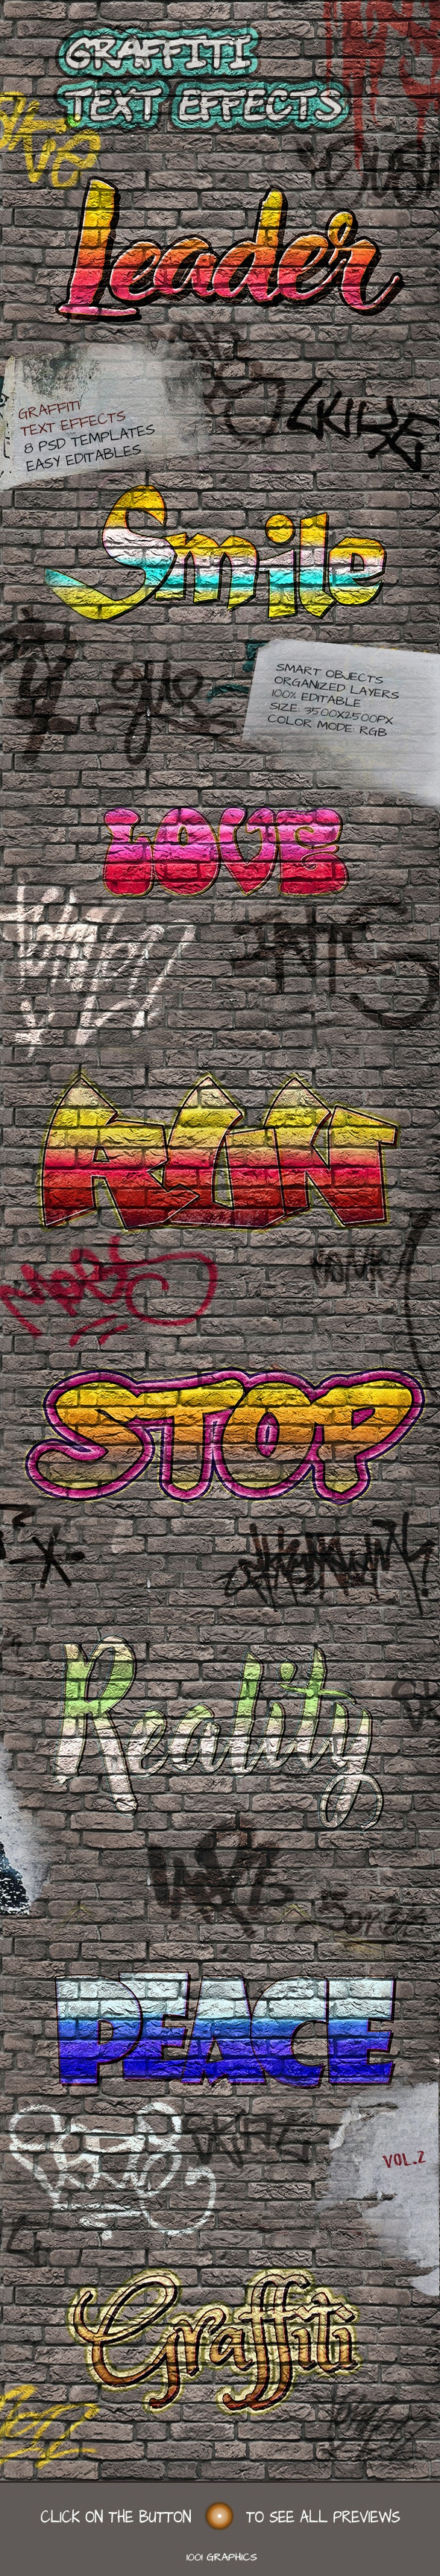 8 Graffiti Text Effects - 8 PSD Templates Vol.2 - Text Effects Actions